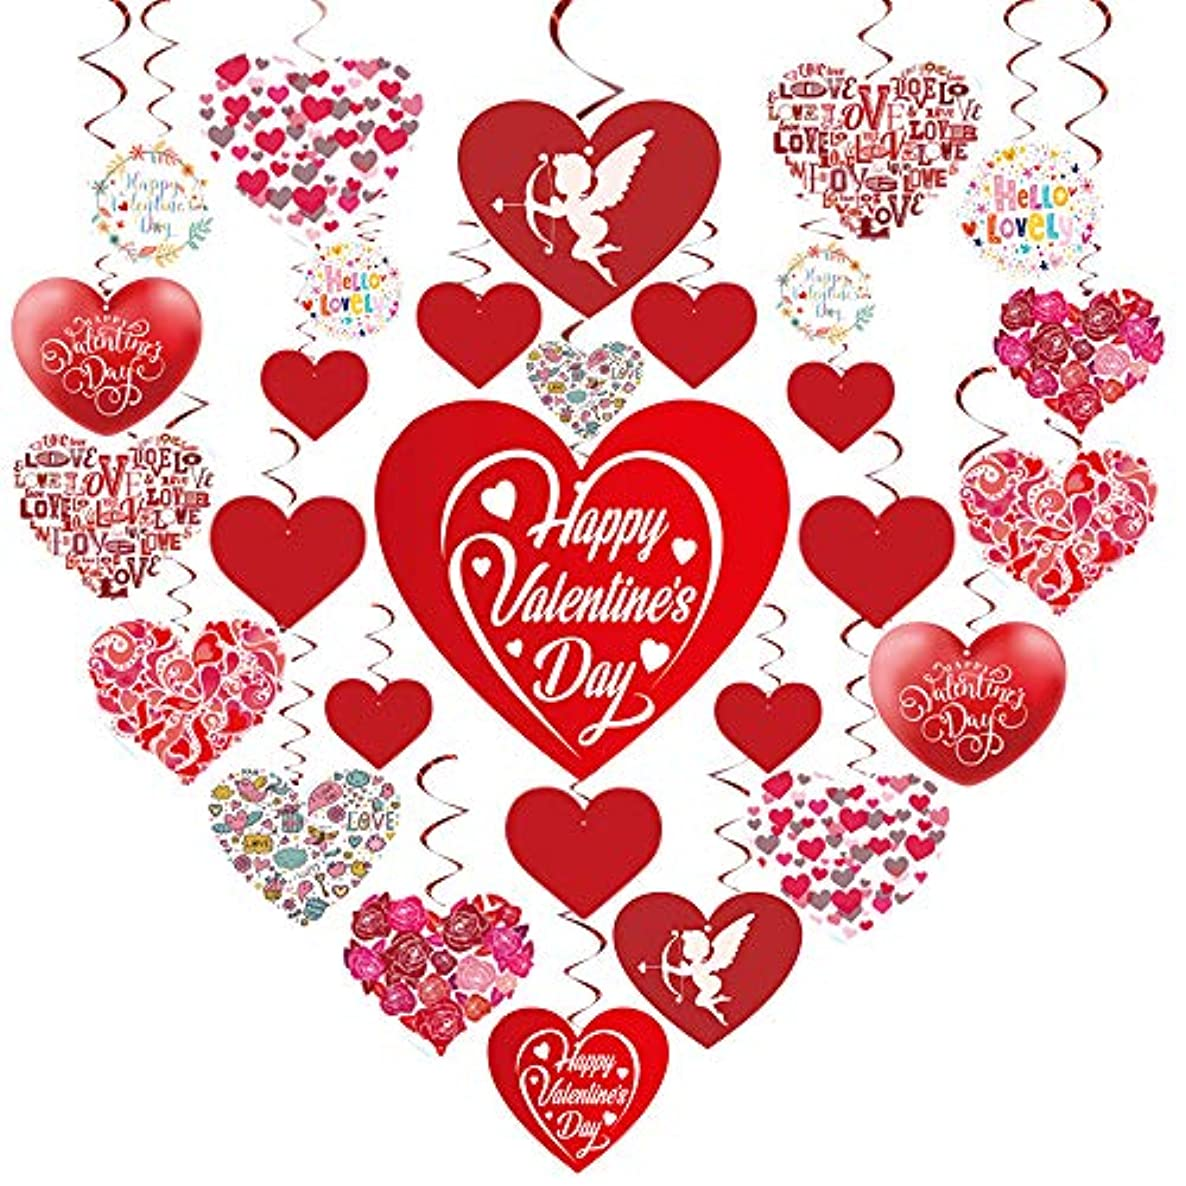 GOER Valentine's Day Party Decorations,30 Pcs Hanging Swirls with 1000 Pcs/0.35 oz Heart Confetti Valentine's Day Party Supplies